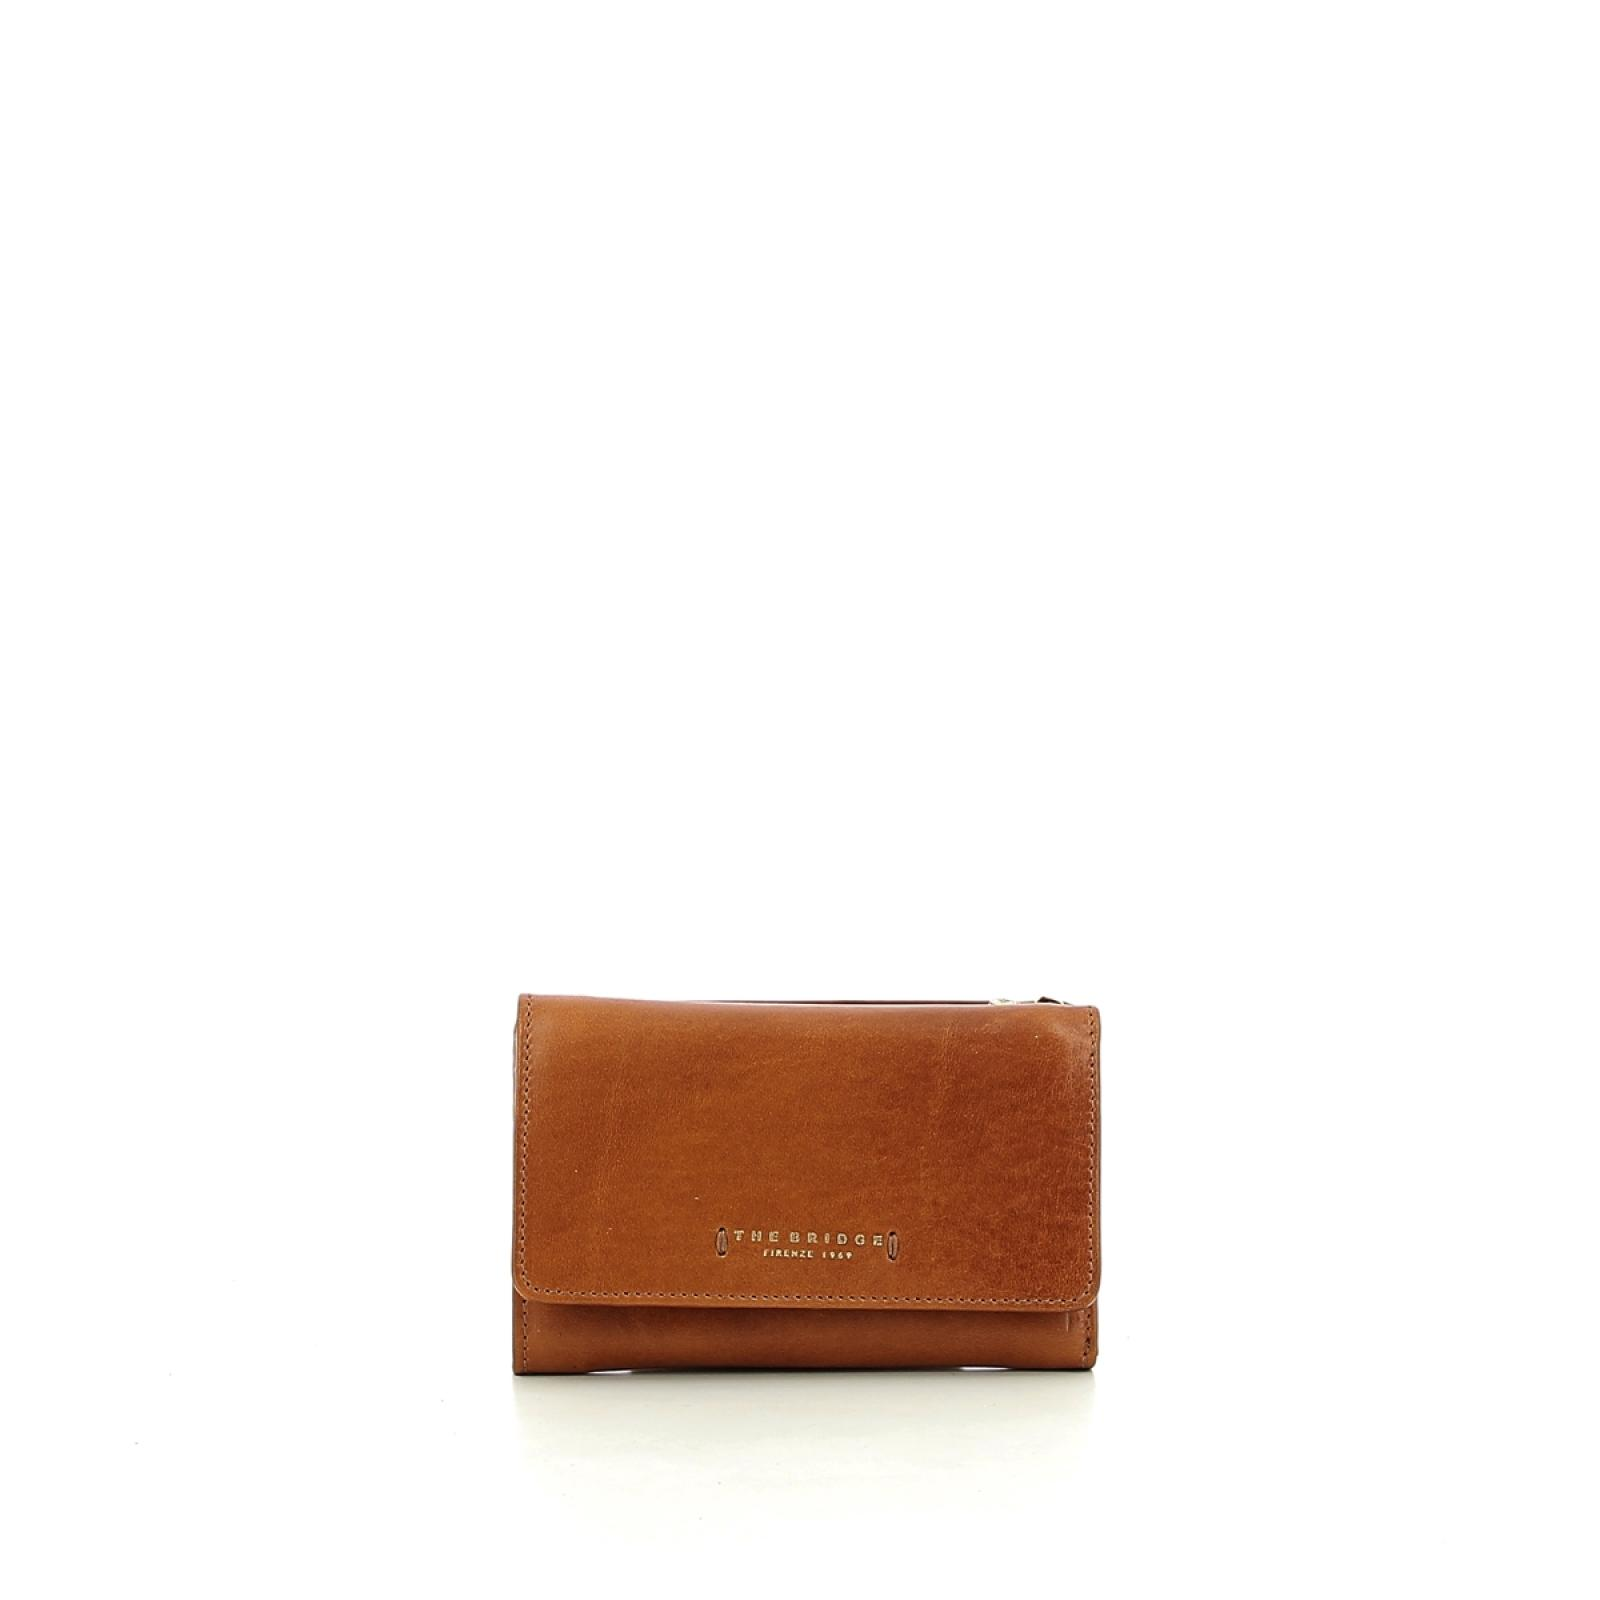 Woman Wallet Passepartout-COGNAC-UN